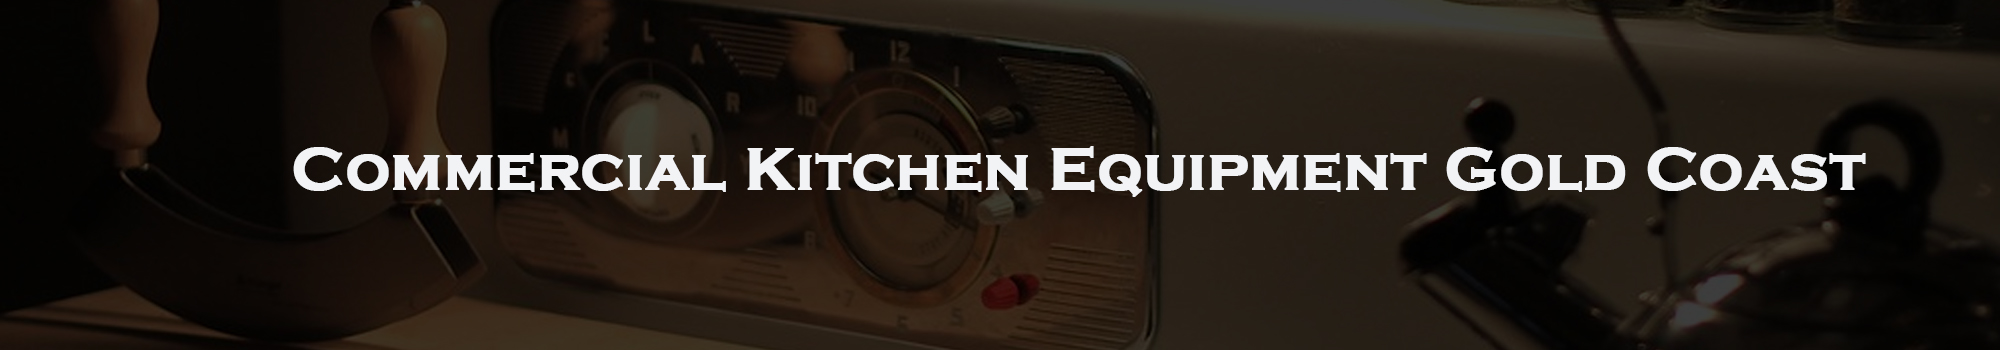 Commercial Kitchen Equipment Gold Coast